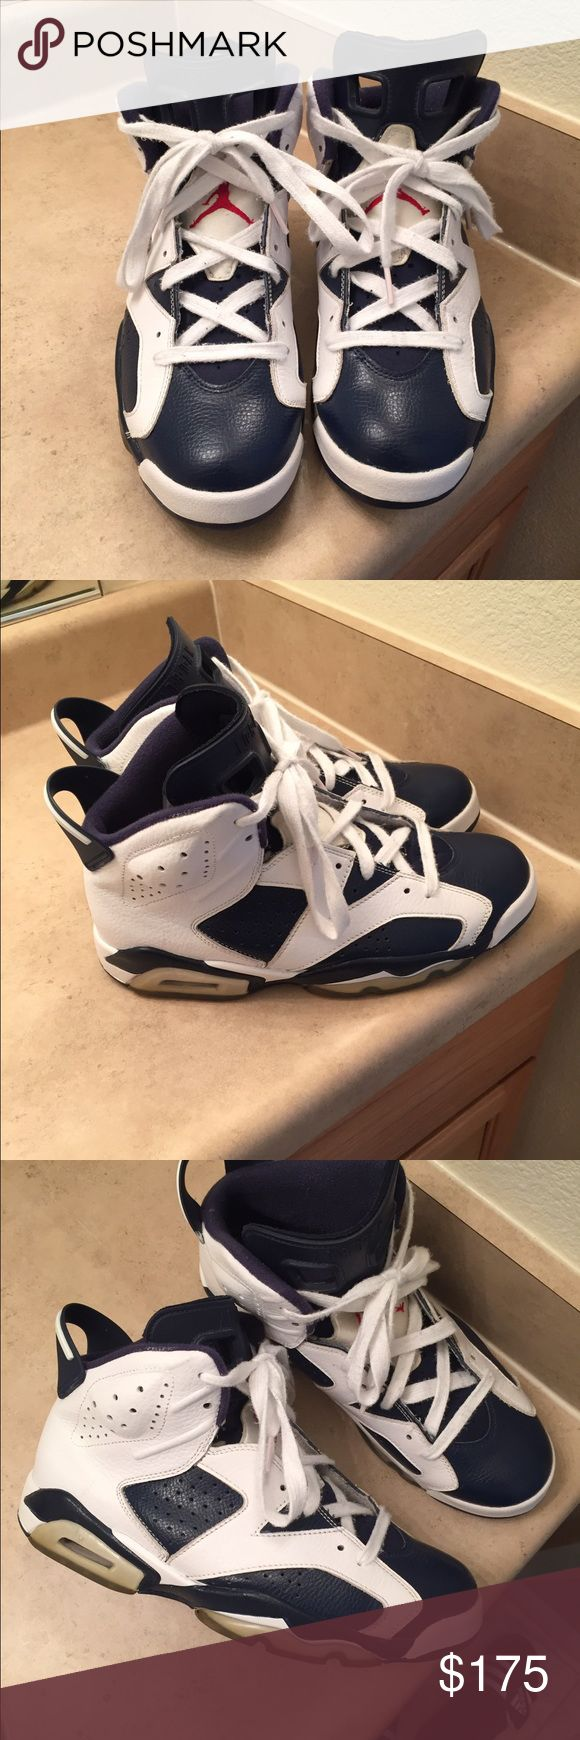 BLUE AND WHITE JORDAN 6's SIZE 9.5 Slighty used but in great condition.. Dont have tha original box.. Jordan Shoes Sneakers